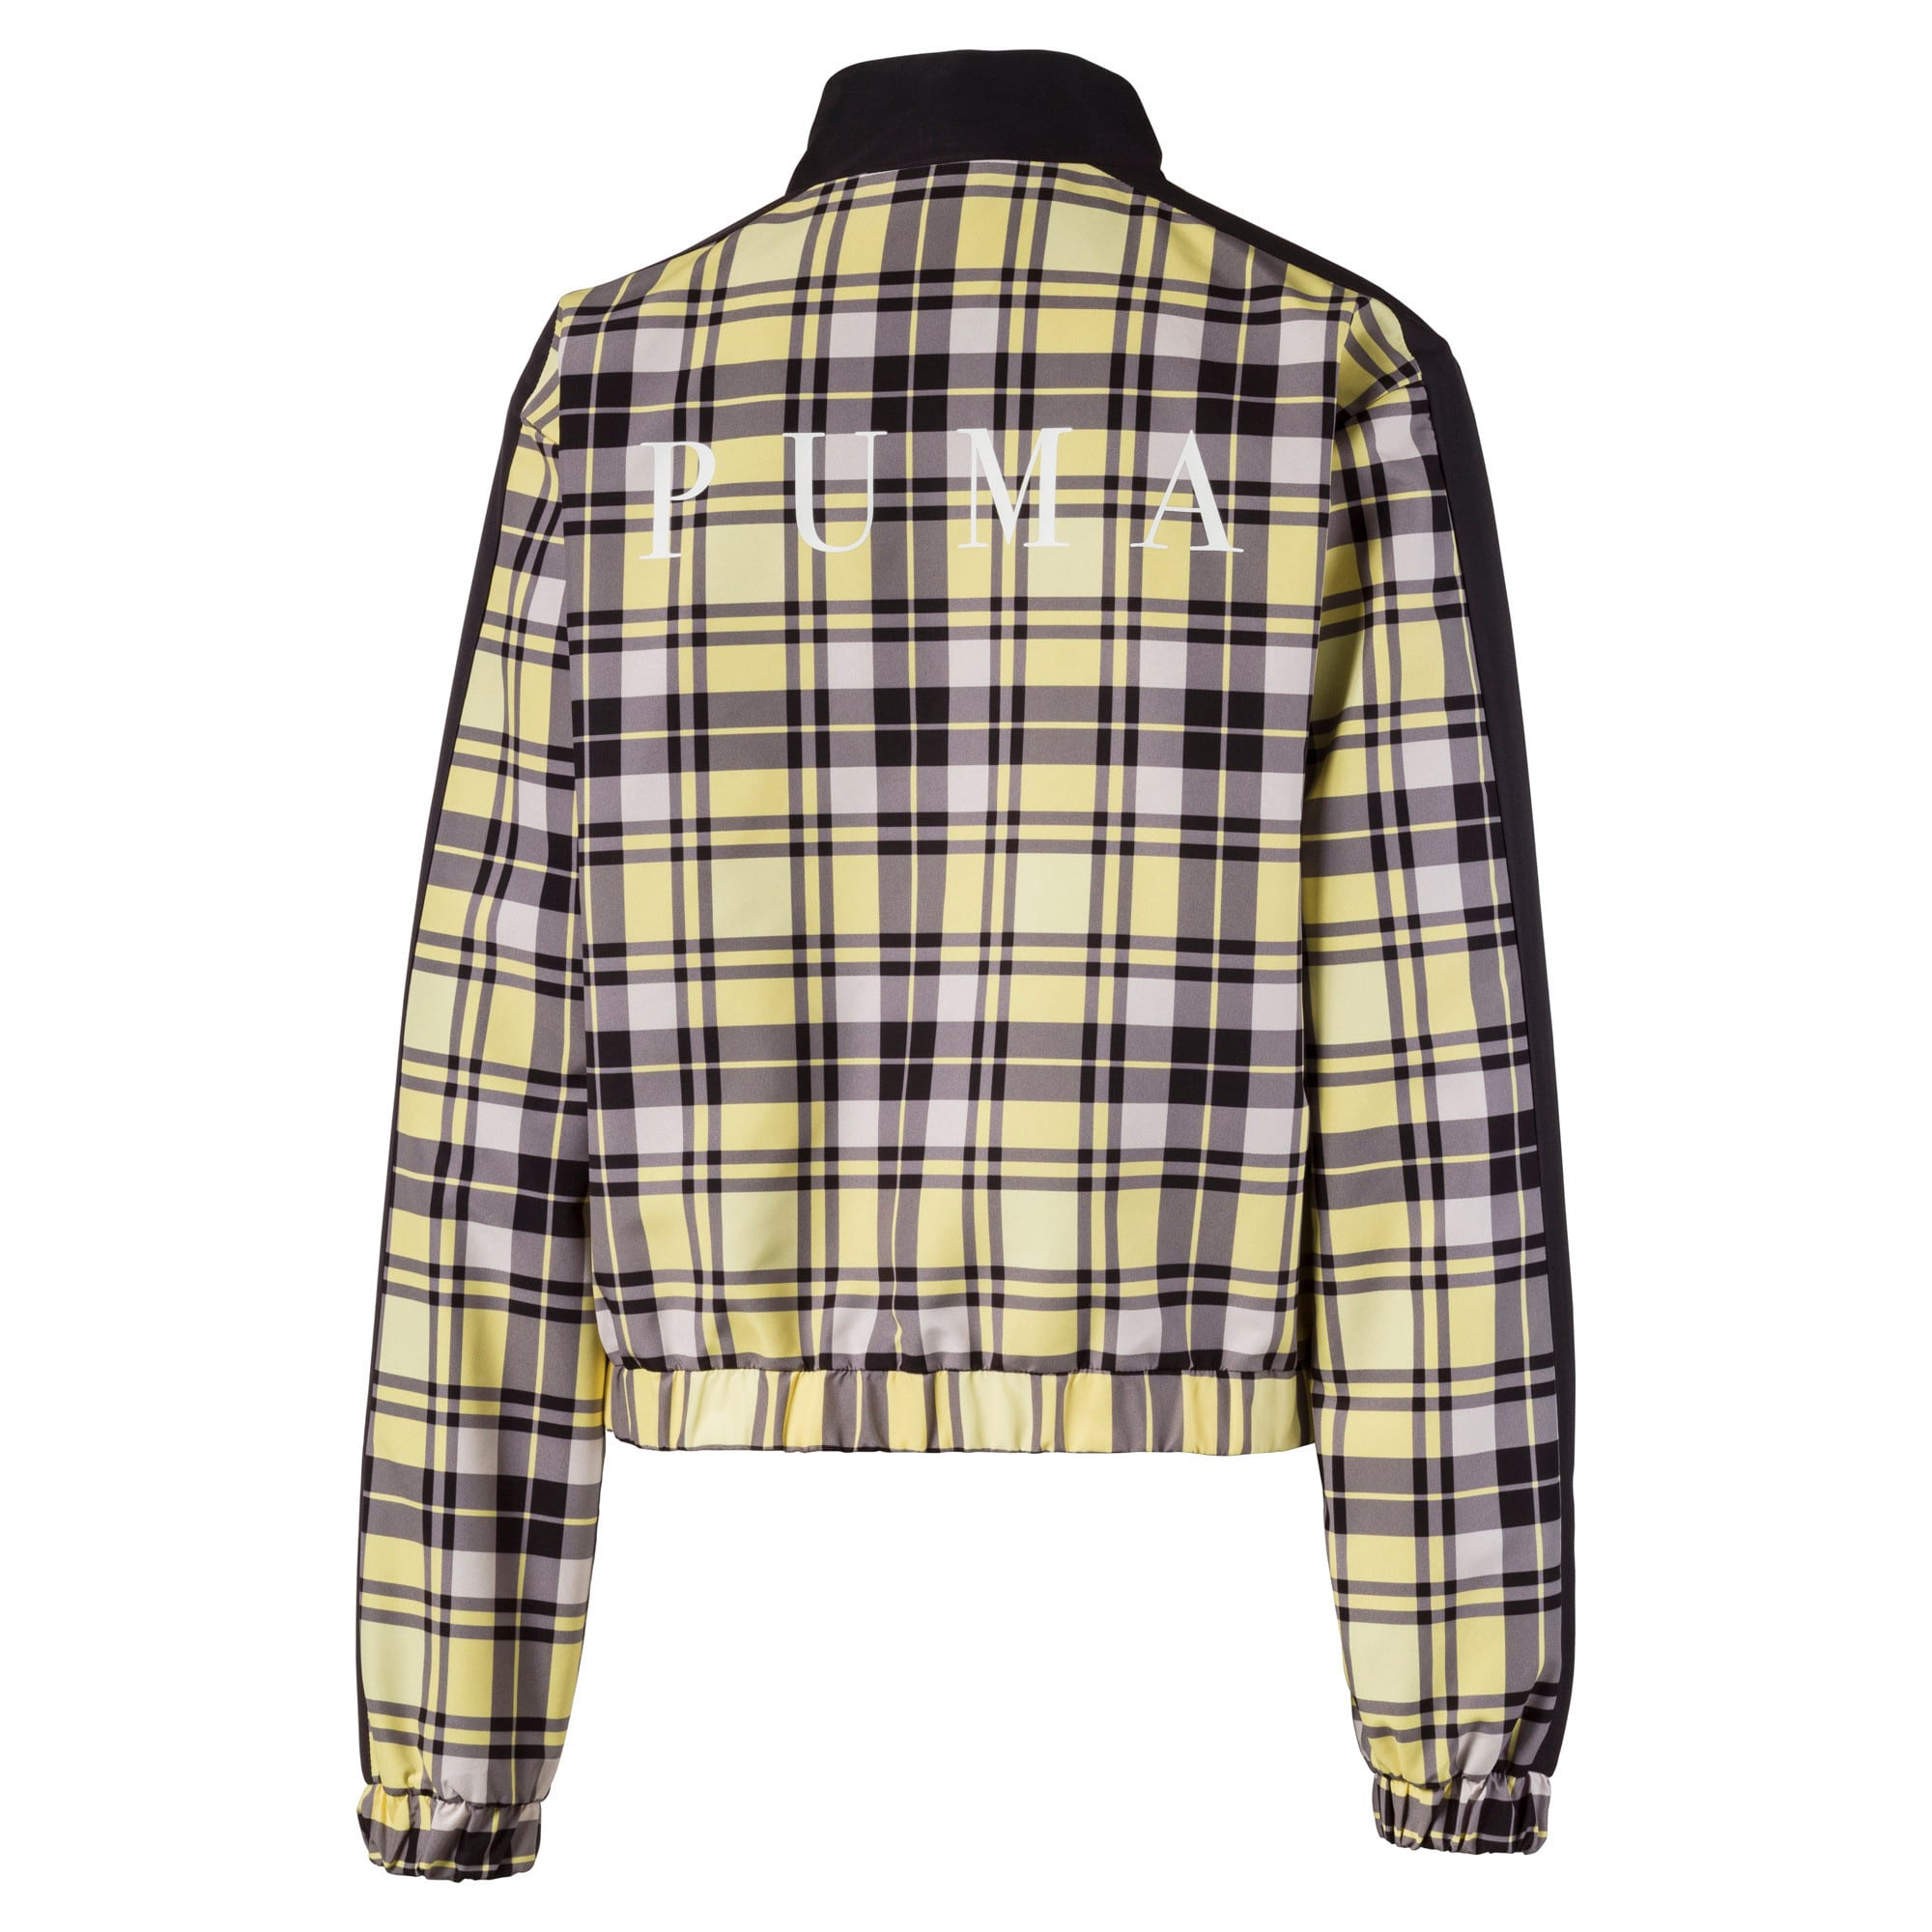 Anteprima 4 di Check Full Zip Women's Jacket, Yellow Cream, medio